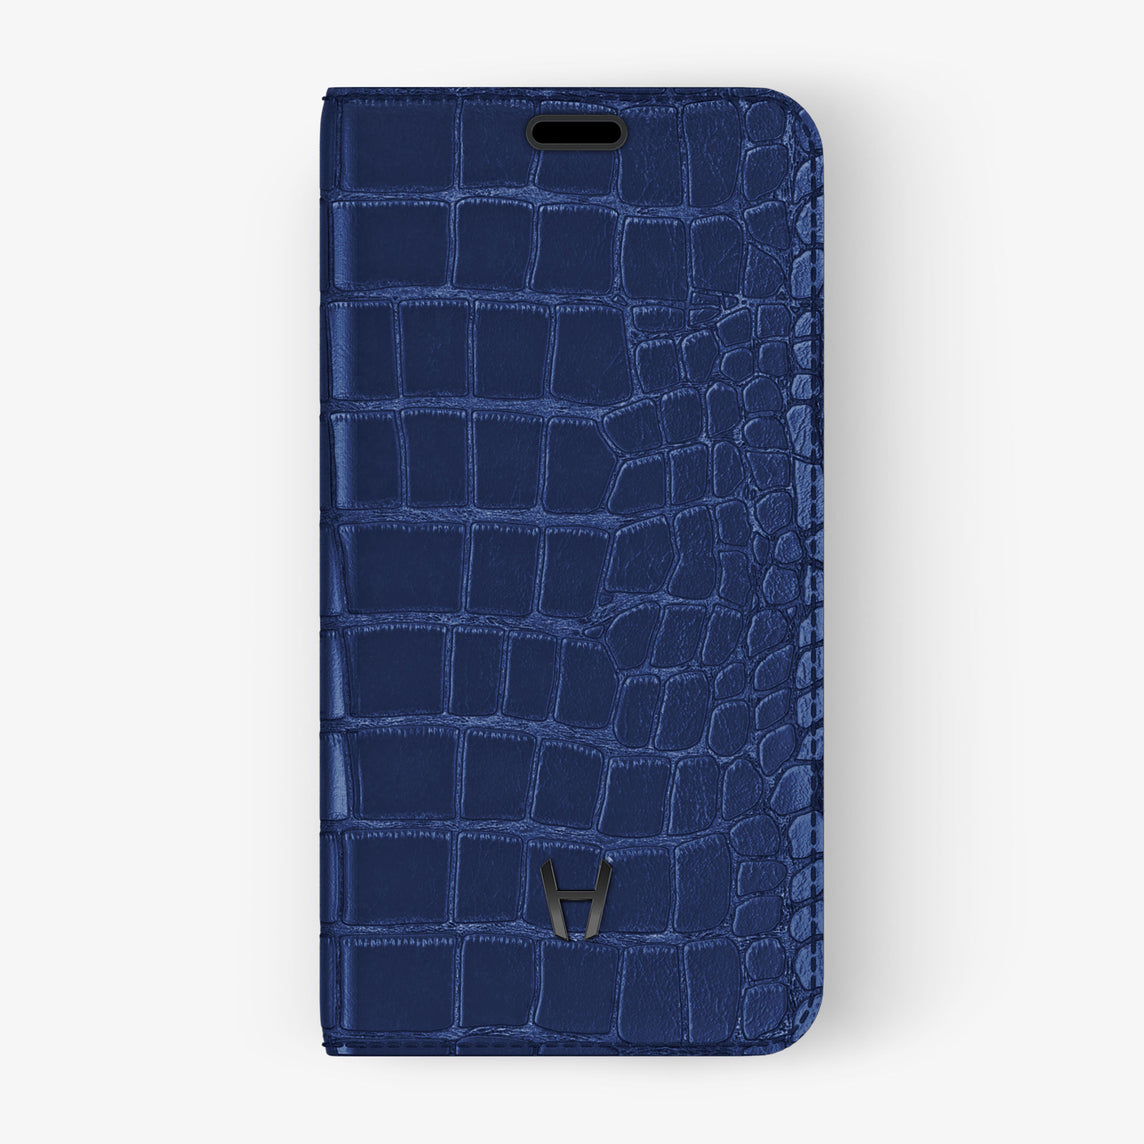 Alligator Folio Case iPhone 11 Pro | Navy Blue - Black